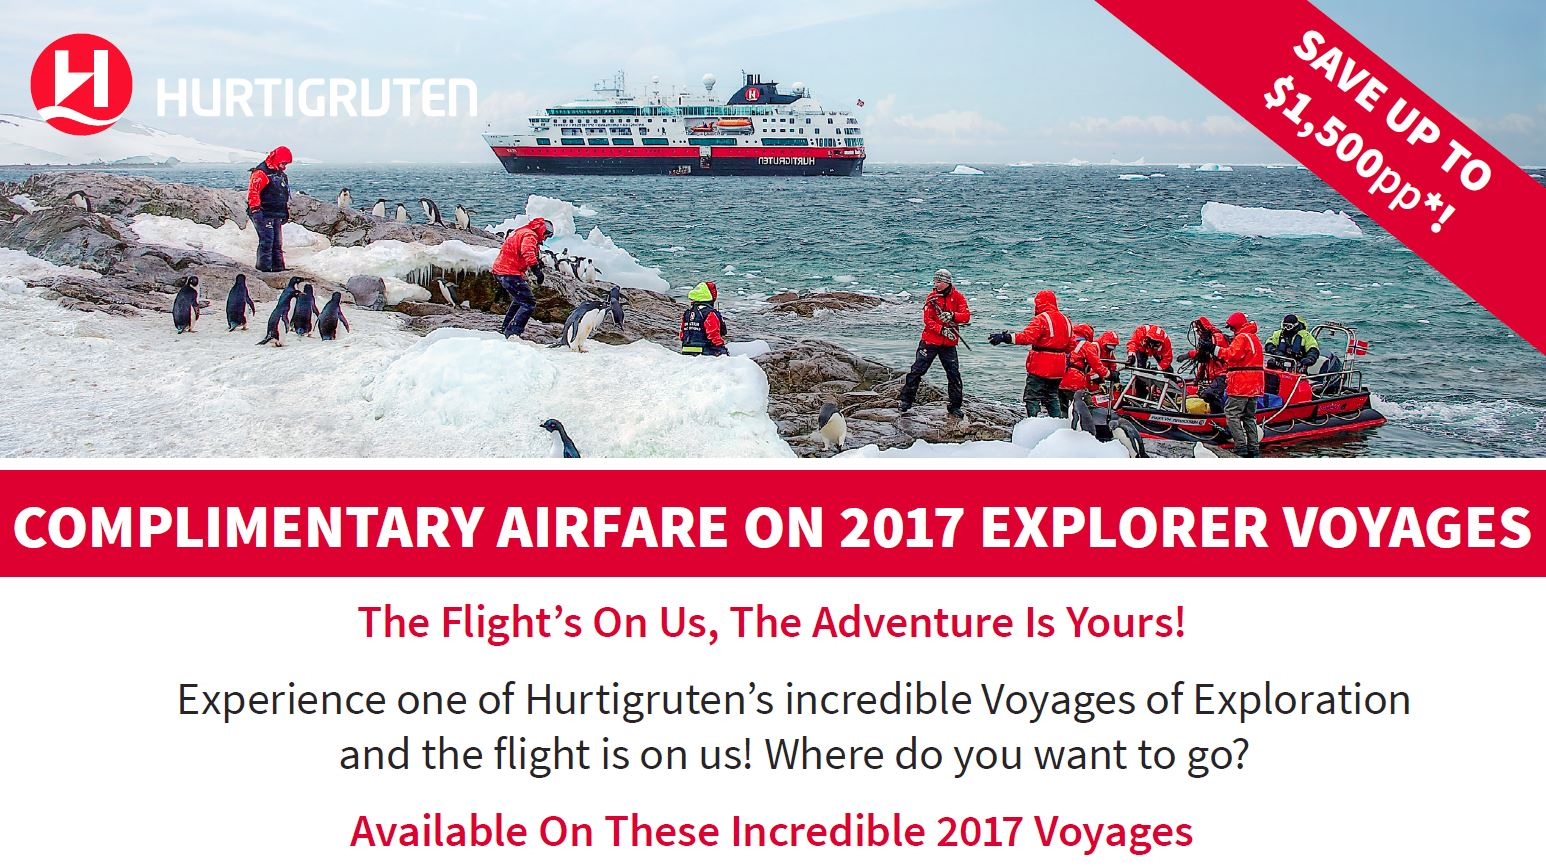 Complimentary Air on 2017 Explorer Voyages